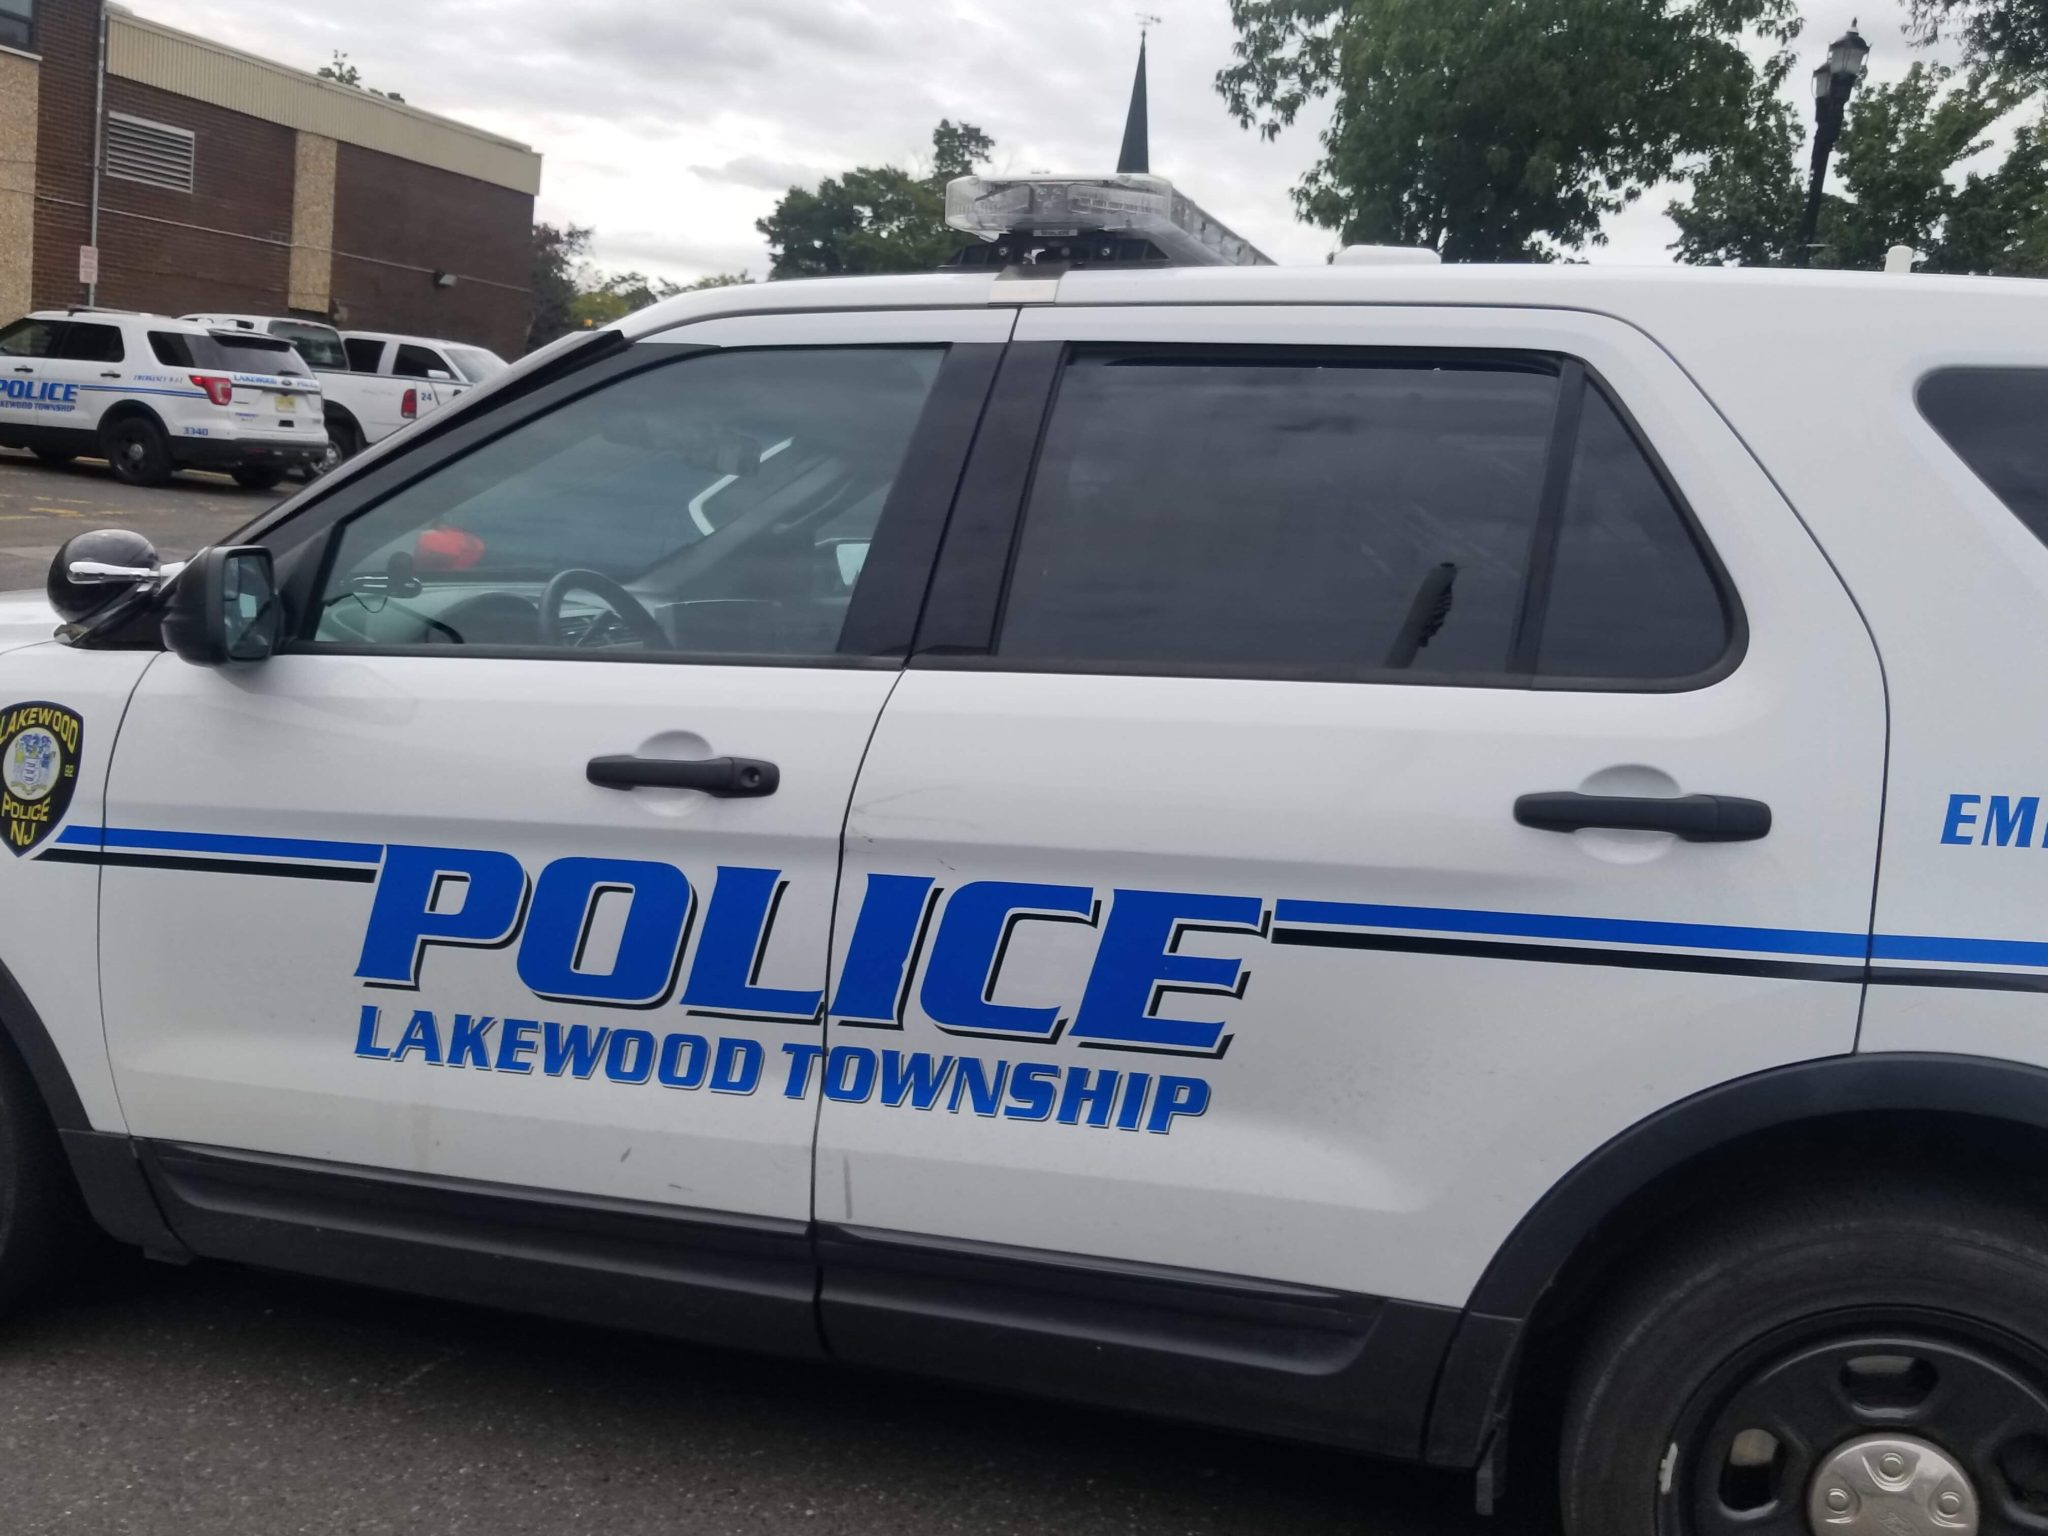 Lakewood: Creeper Arrested For Lewdness In Lakewood Parking Lot